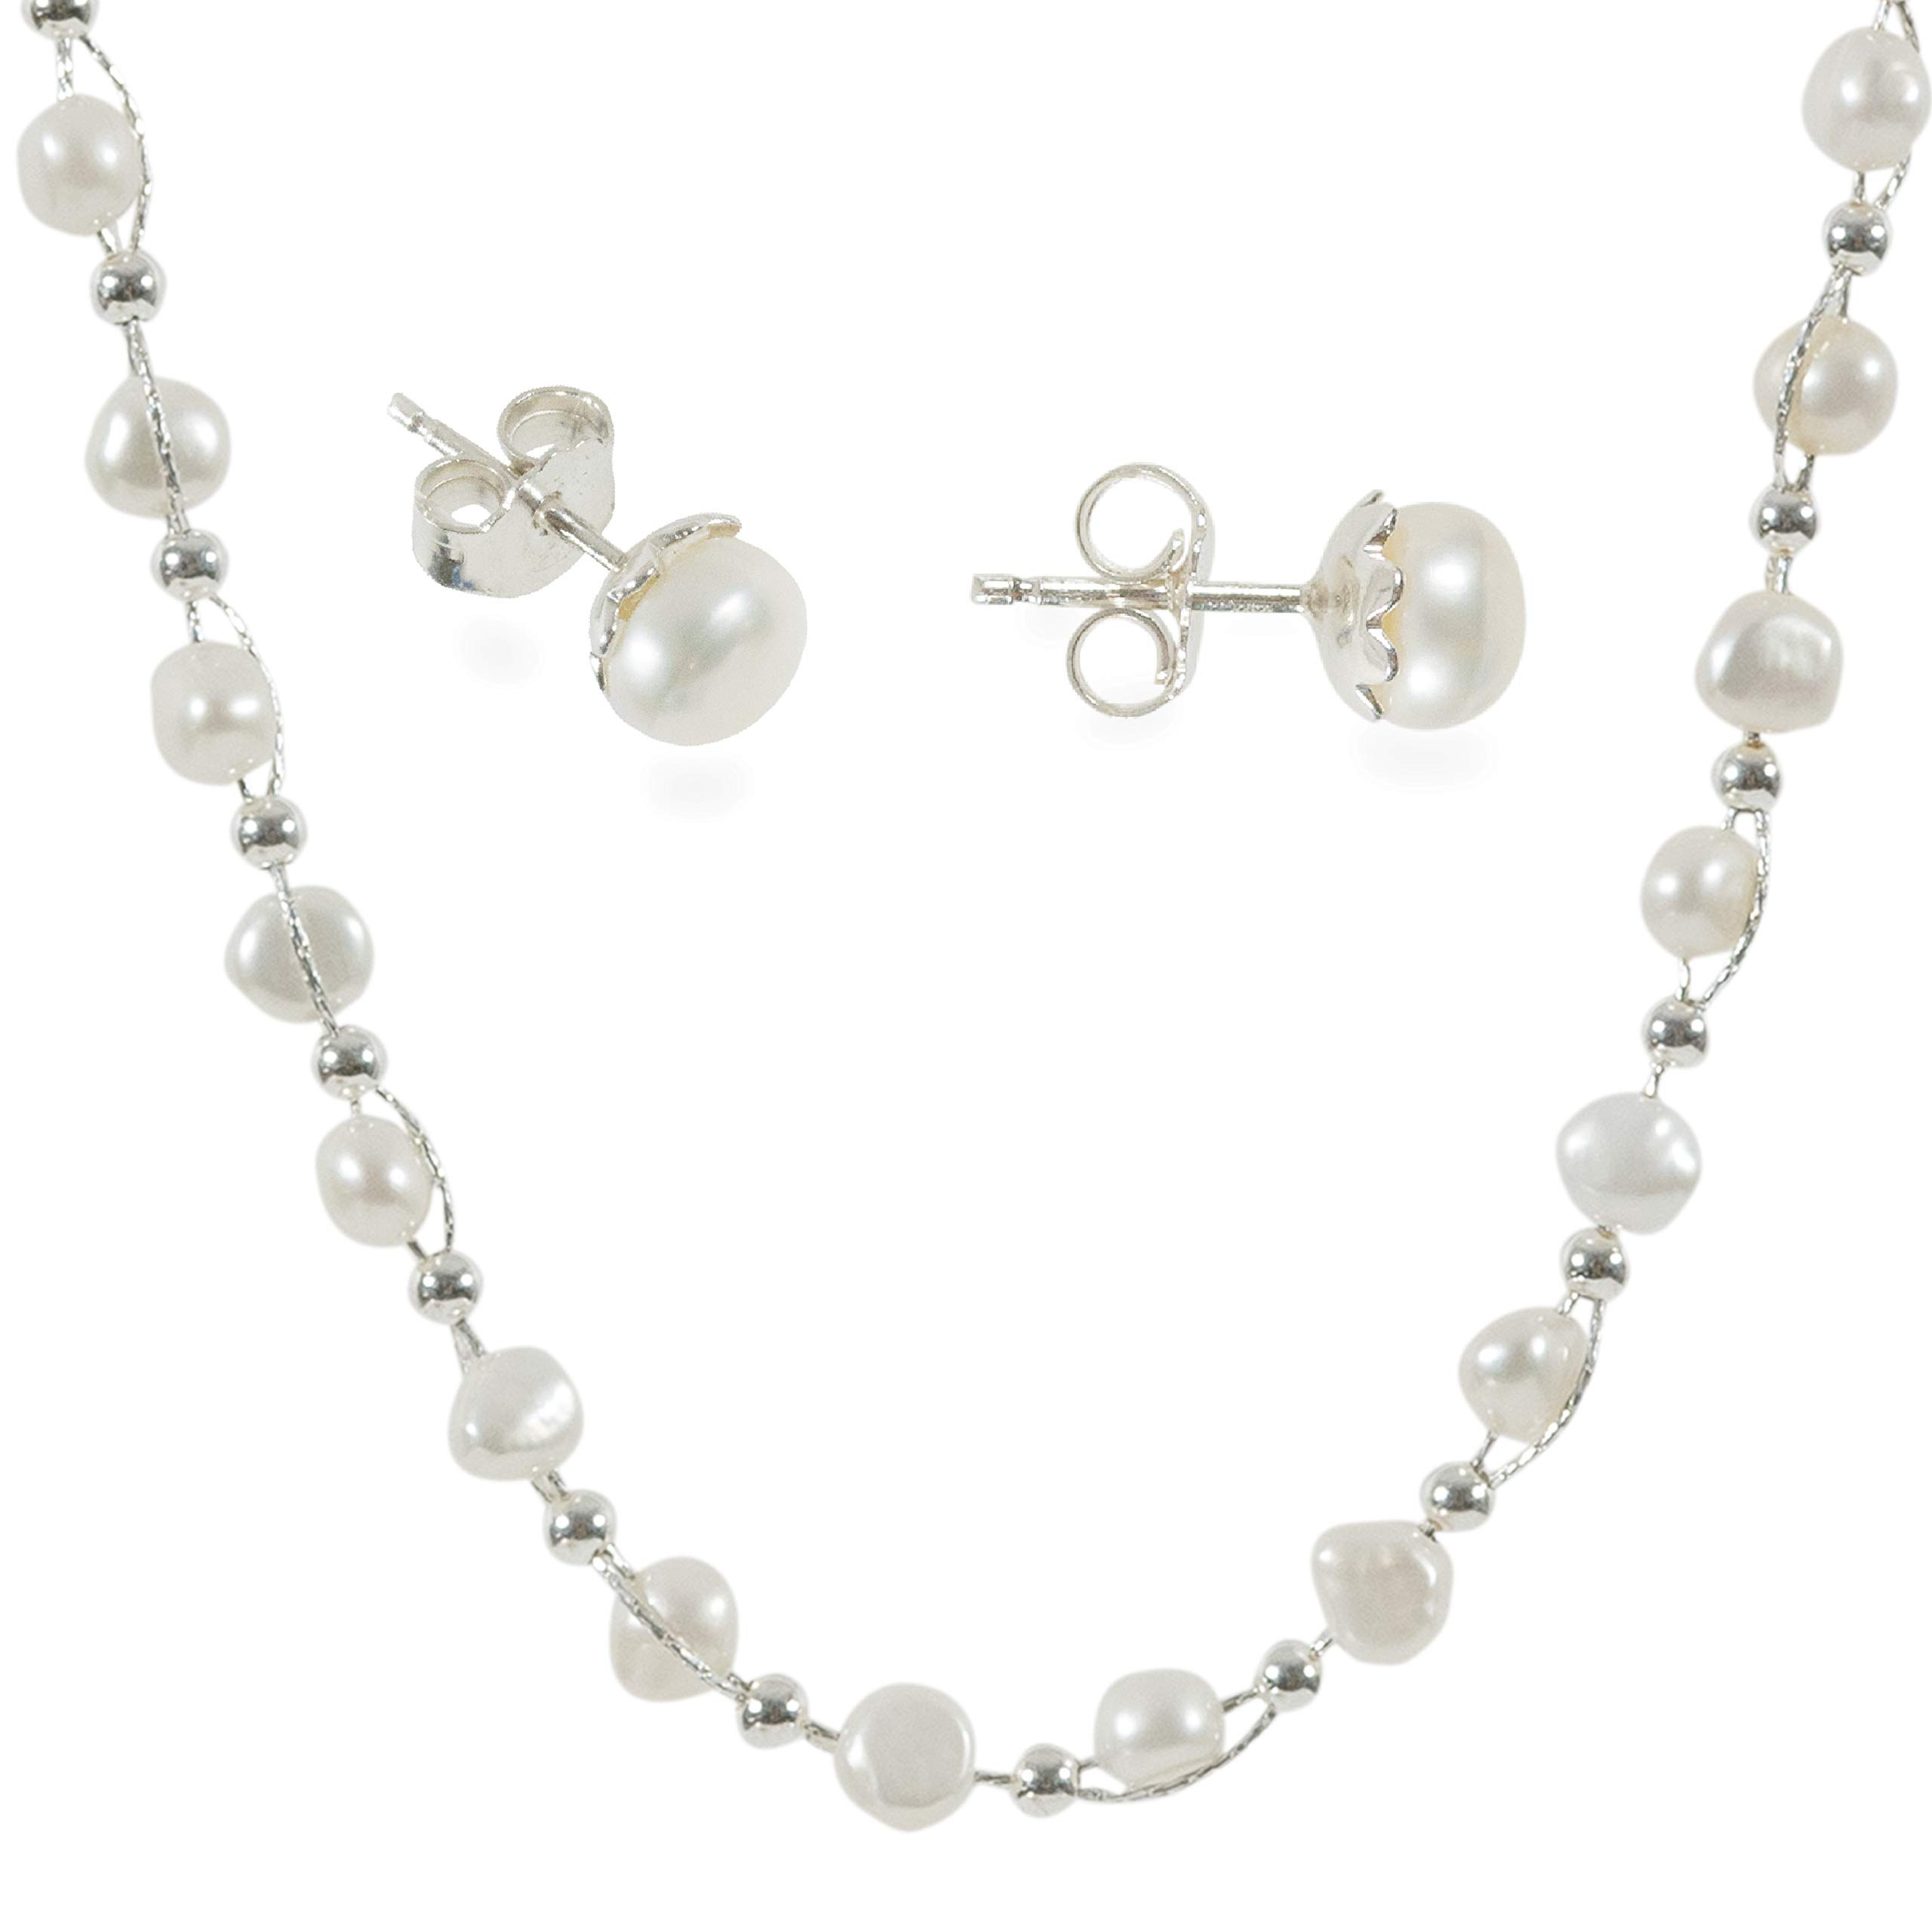 DiDaDo Entwined Cultured White Pearl and Sterling Silver Beads Chain Necklace with Bonus Sterling Pearl Studs